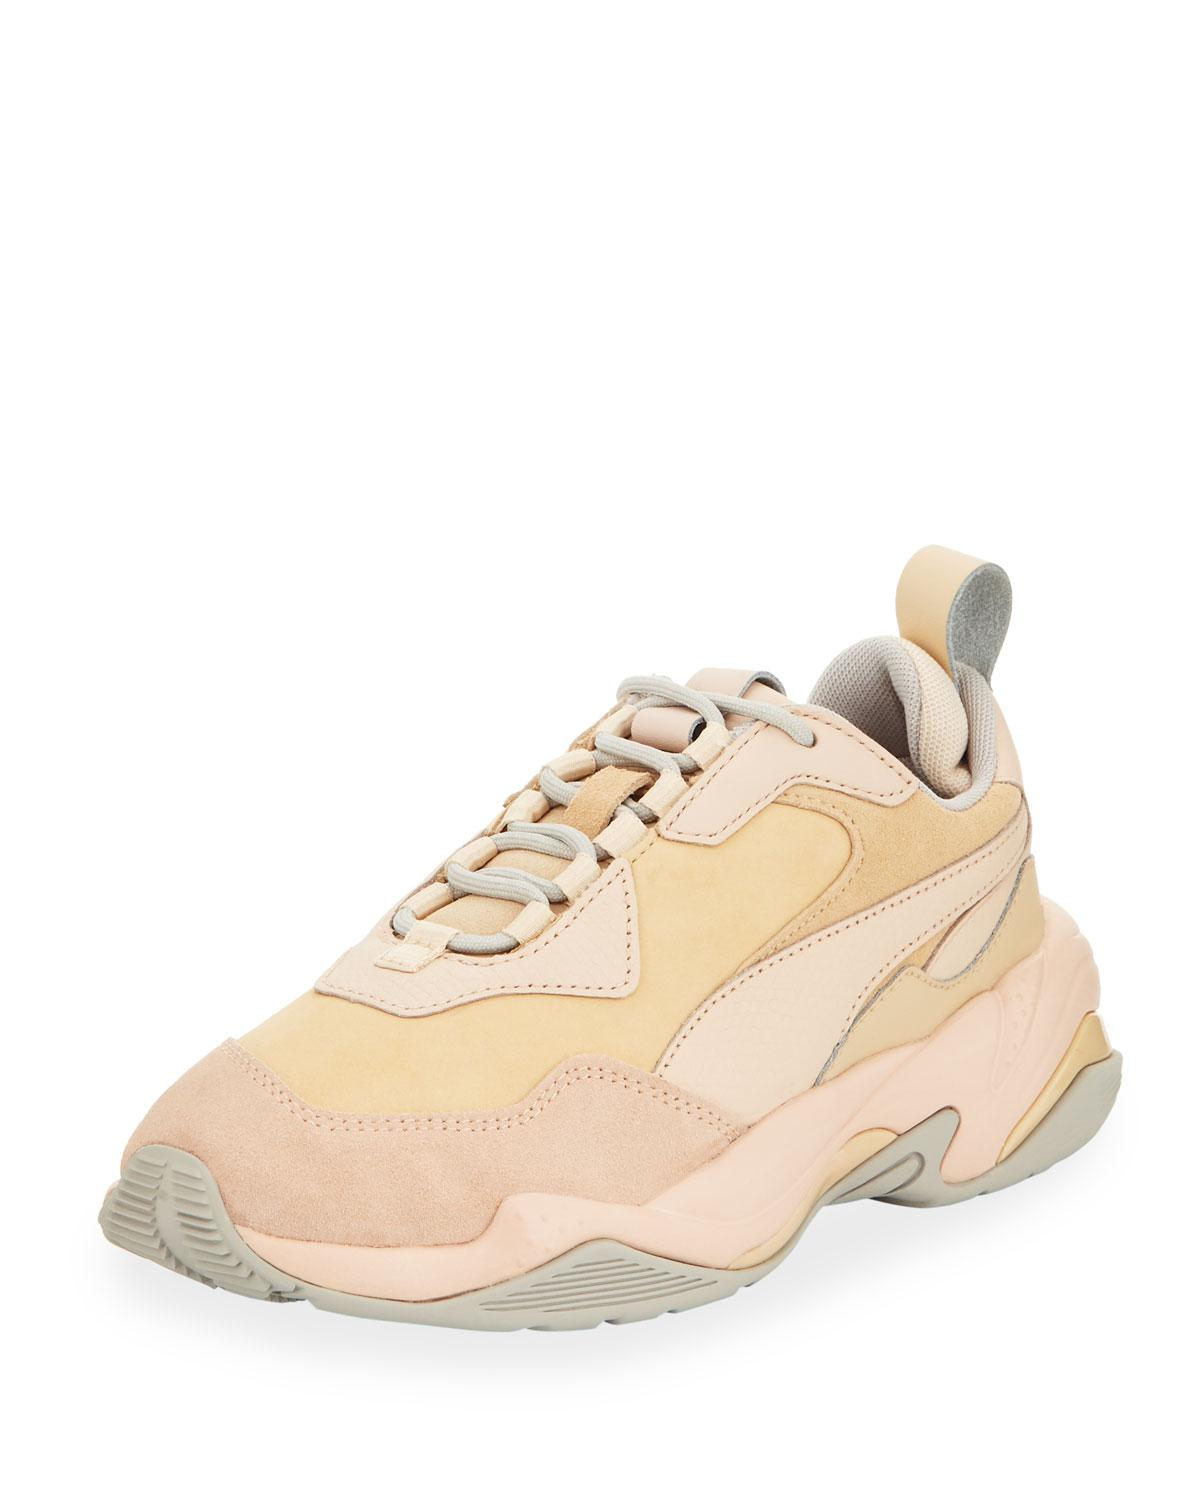 636cc2fa5f2596 Lyst - PUMA Thunder Drift Leather Trainer Sneakers in Natural